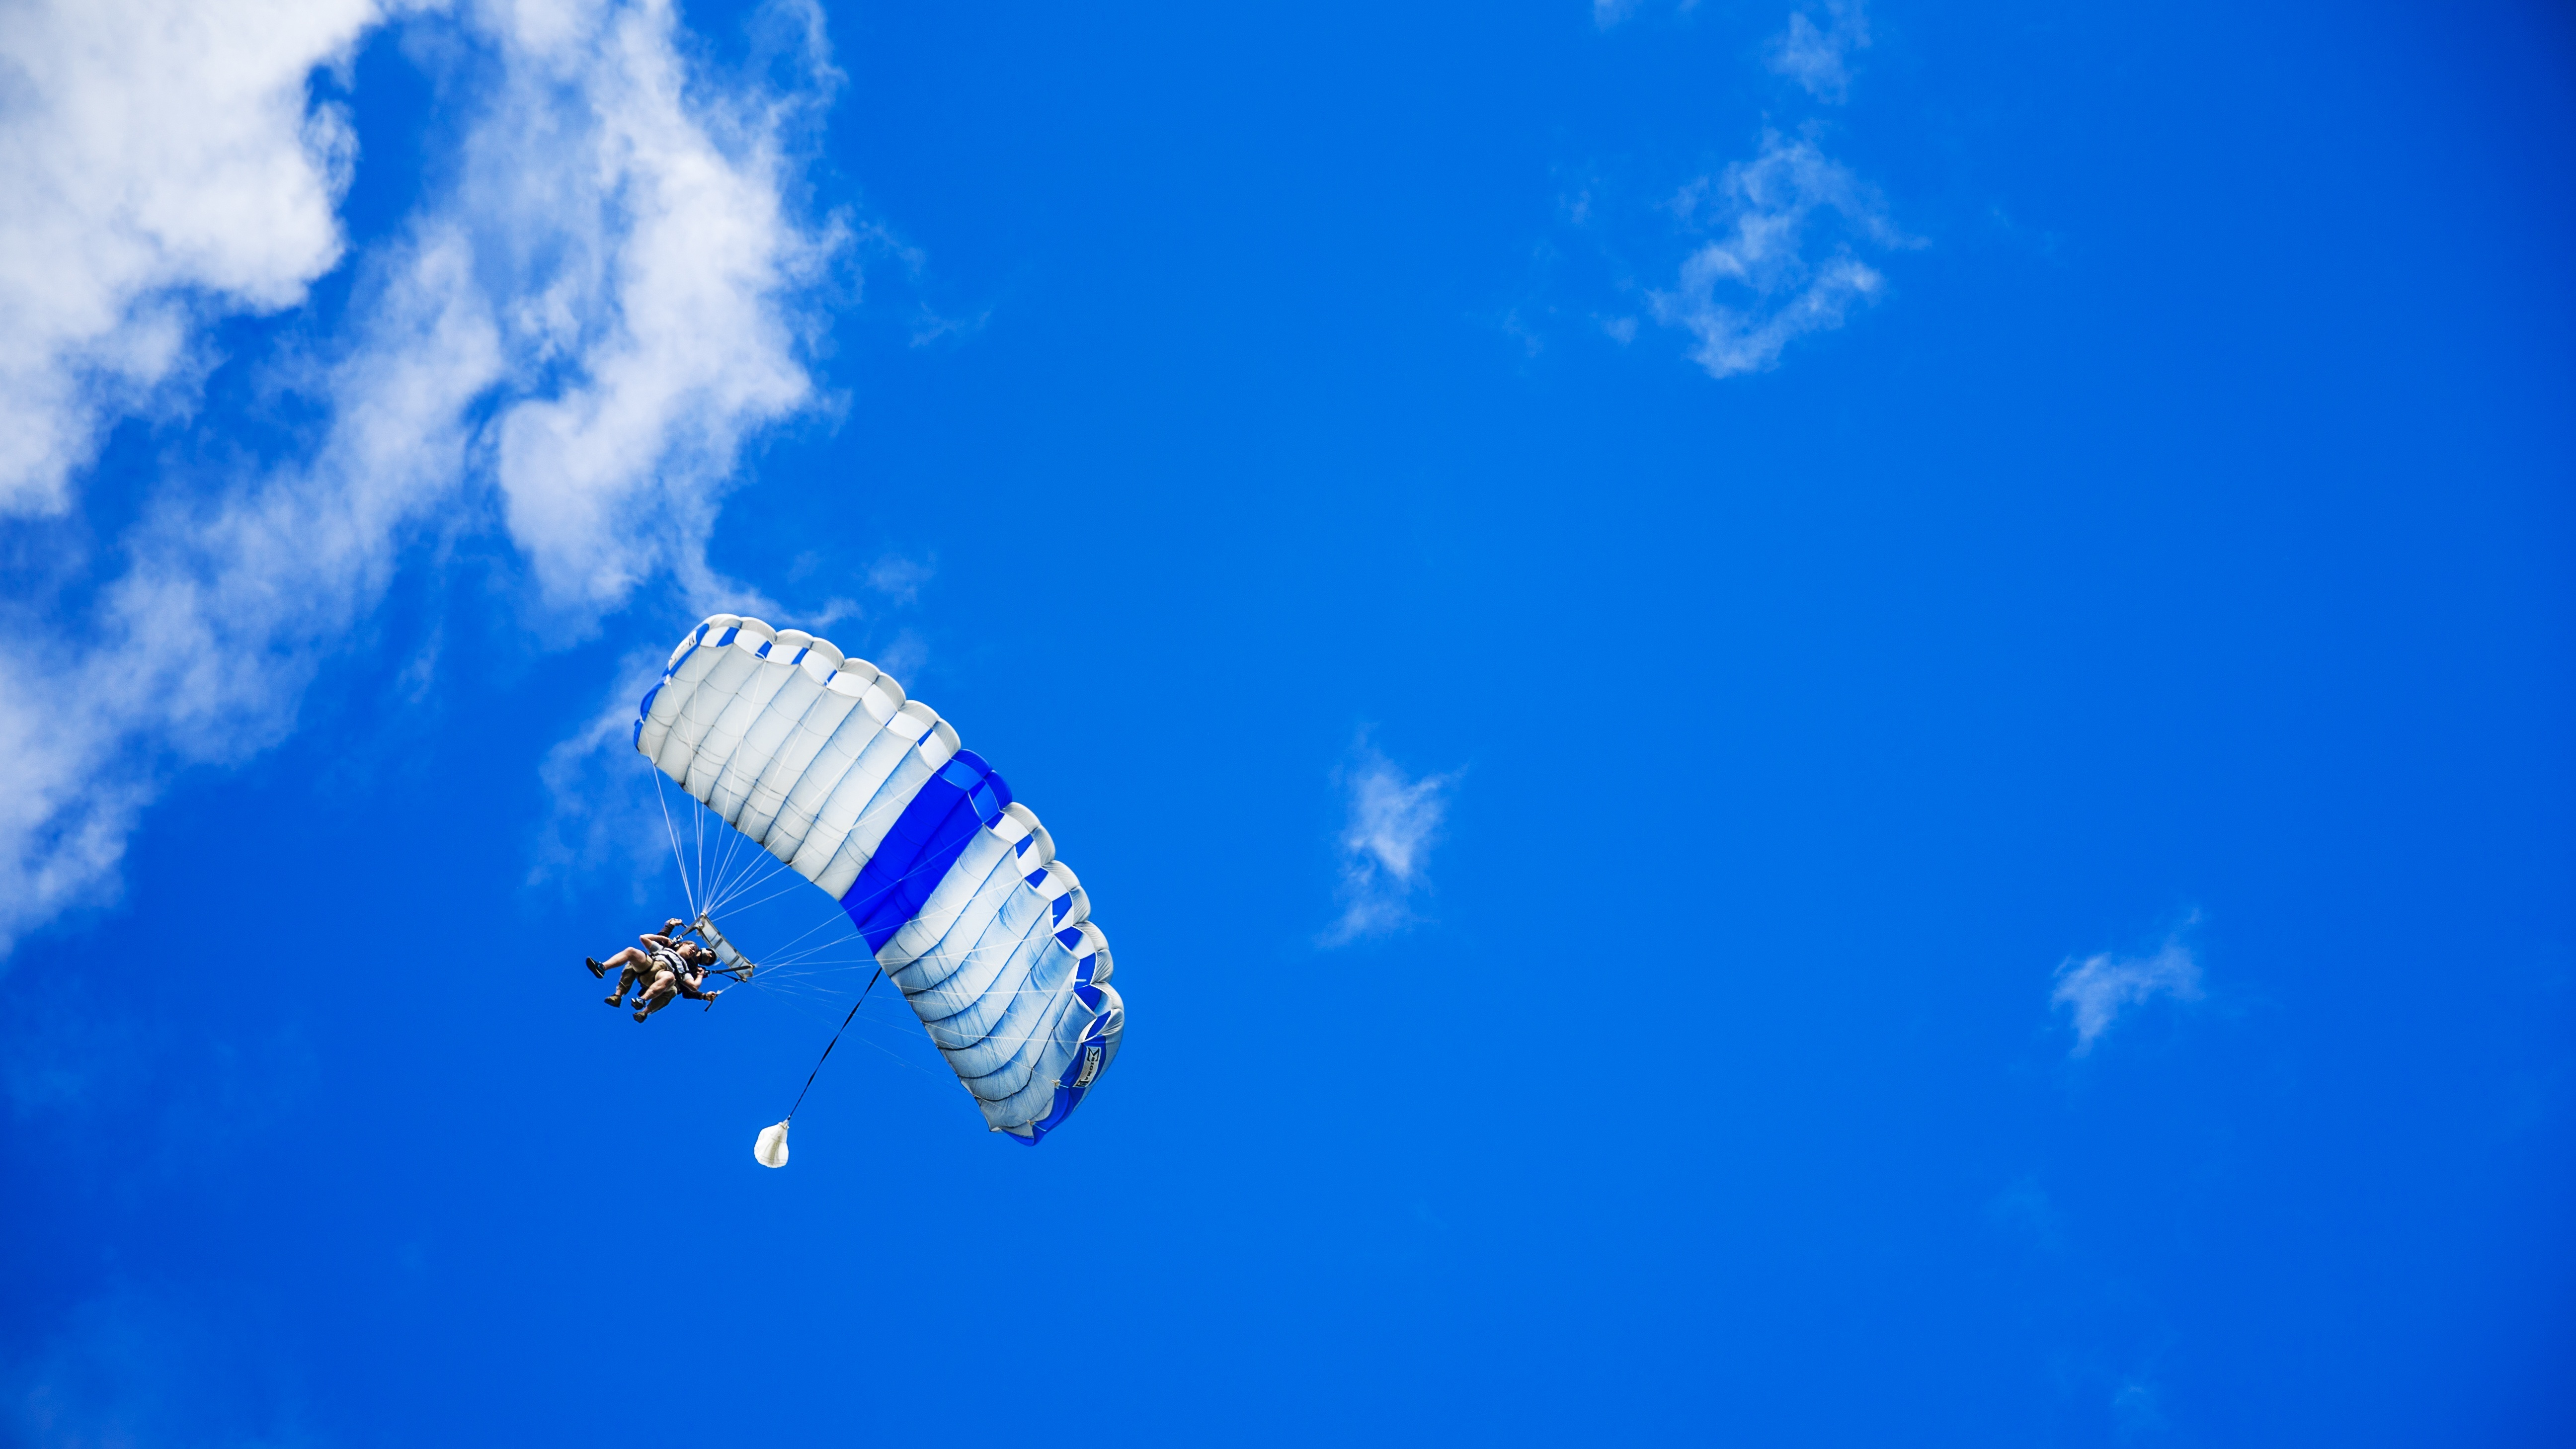 Skydiving is the perfect 50th birthday gift idea for men